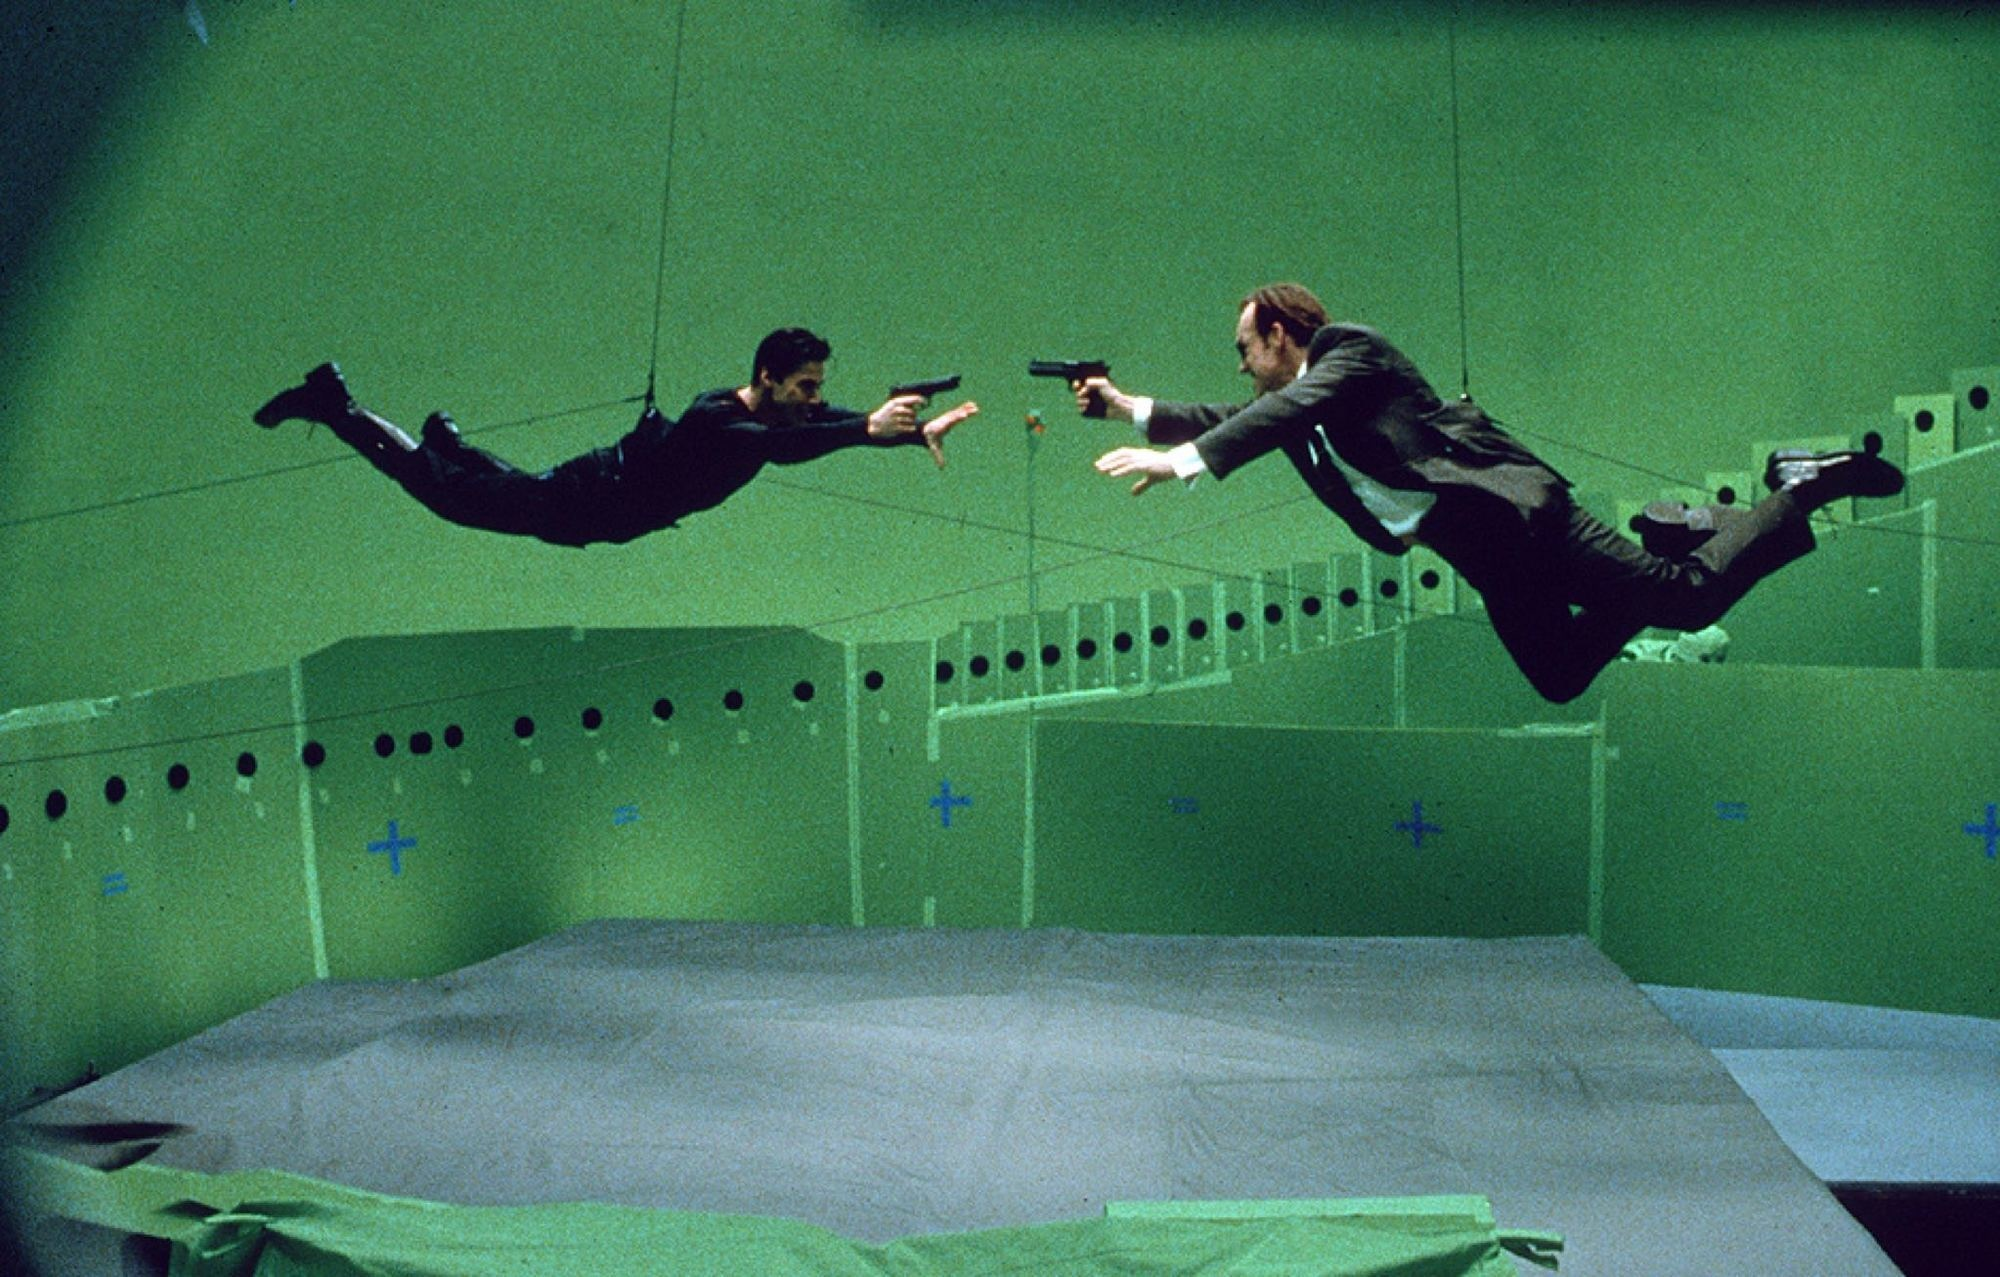 Keanu Reeves and Hugo Weaving shooting at each other in The Matrix.